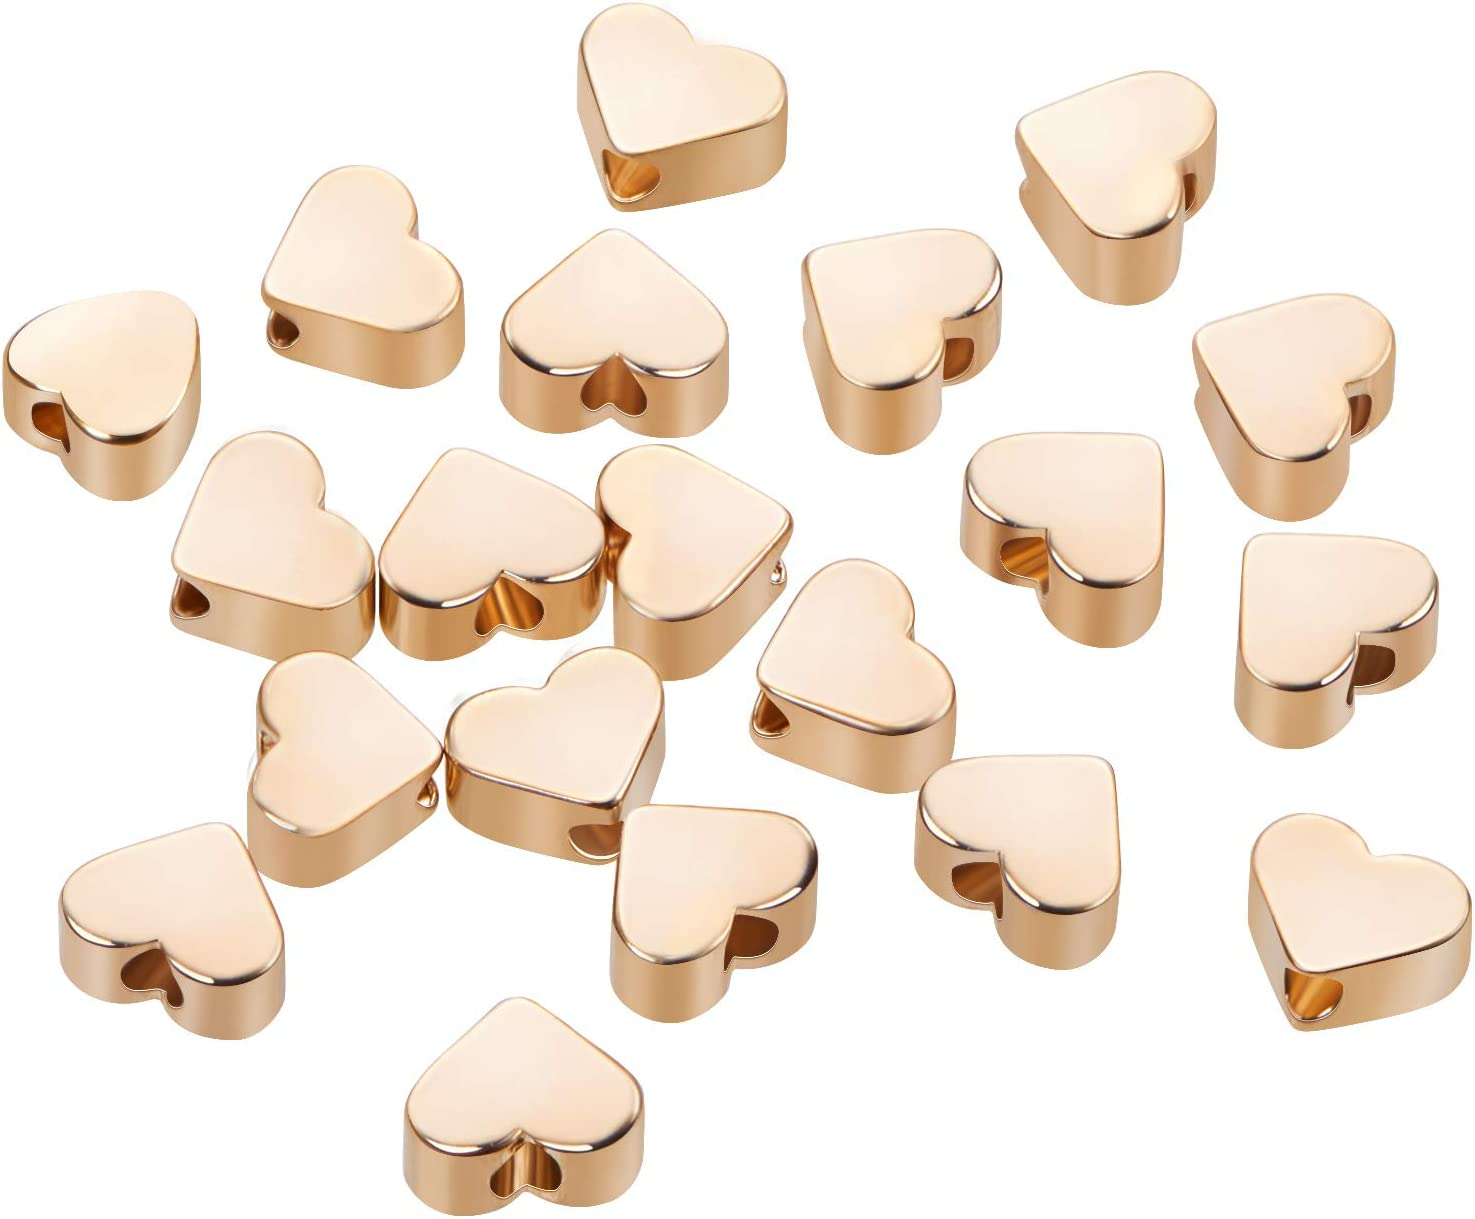 4.5x5x2.5mm Heart Shape BENECREAT 20 PCS 18K Gold Plated Beads Metal Beads for DIY Jewelry Making and Other Craft Work